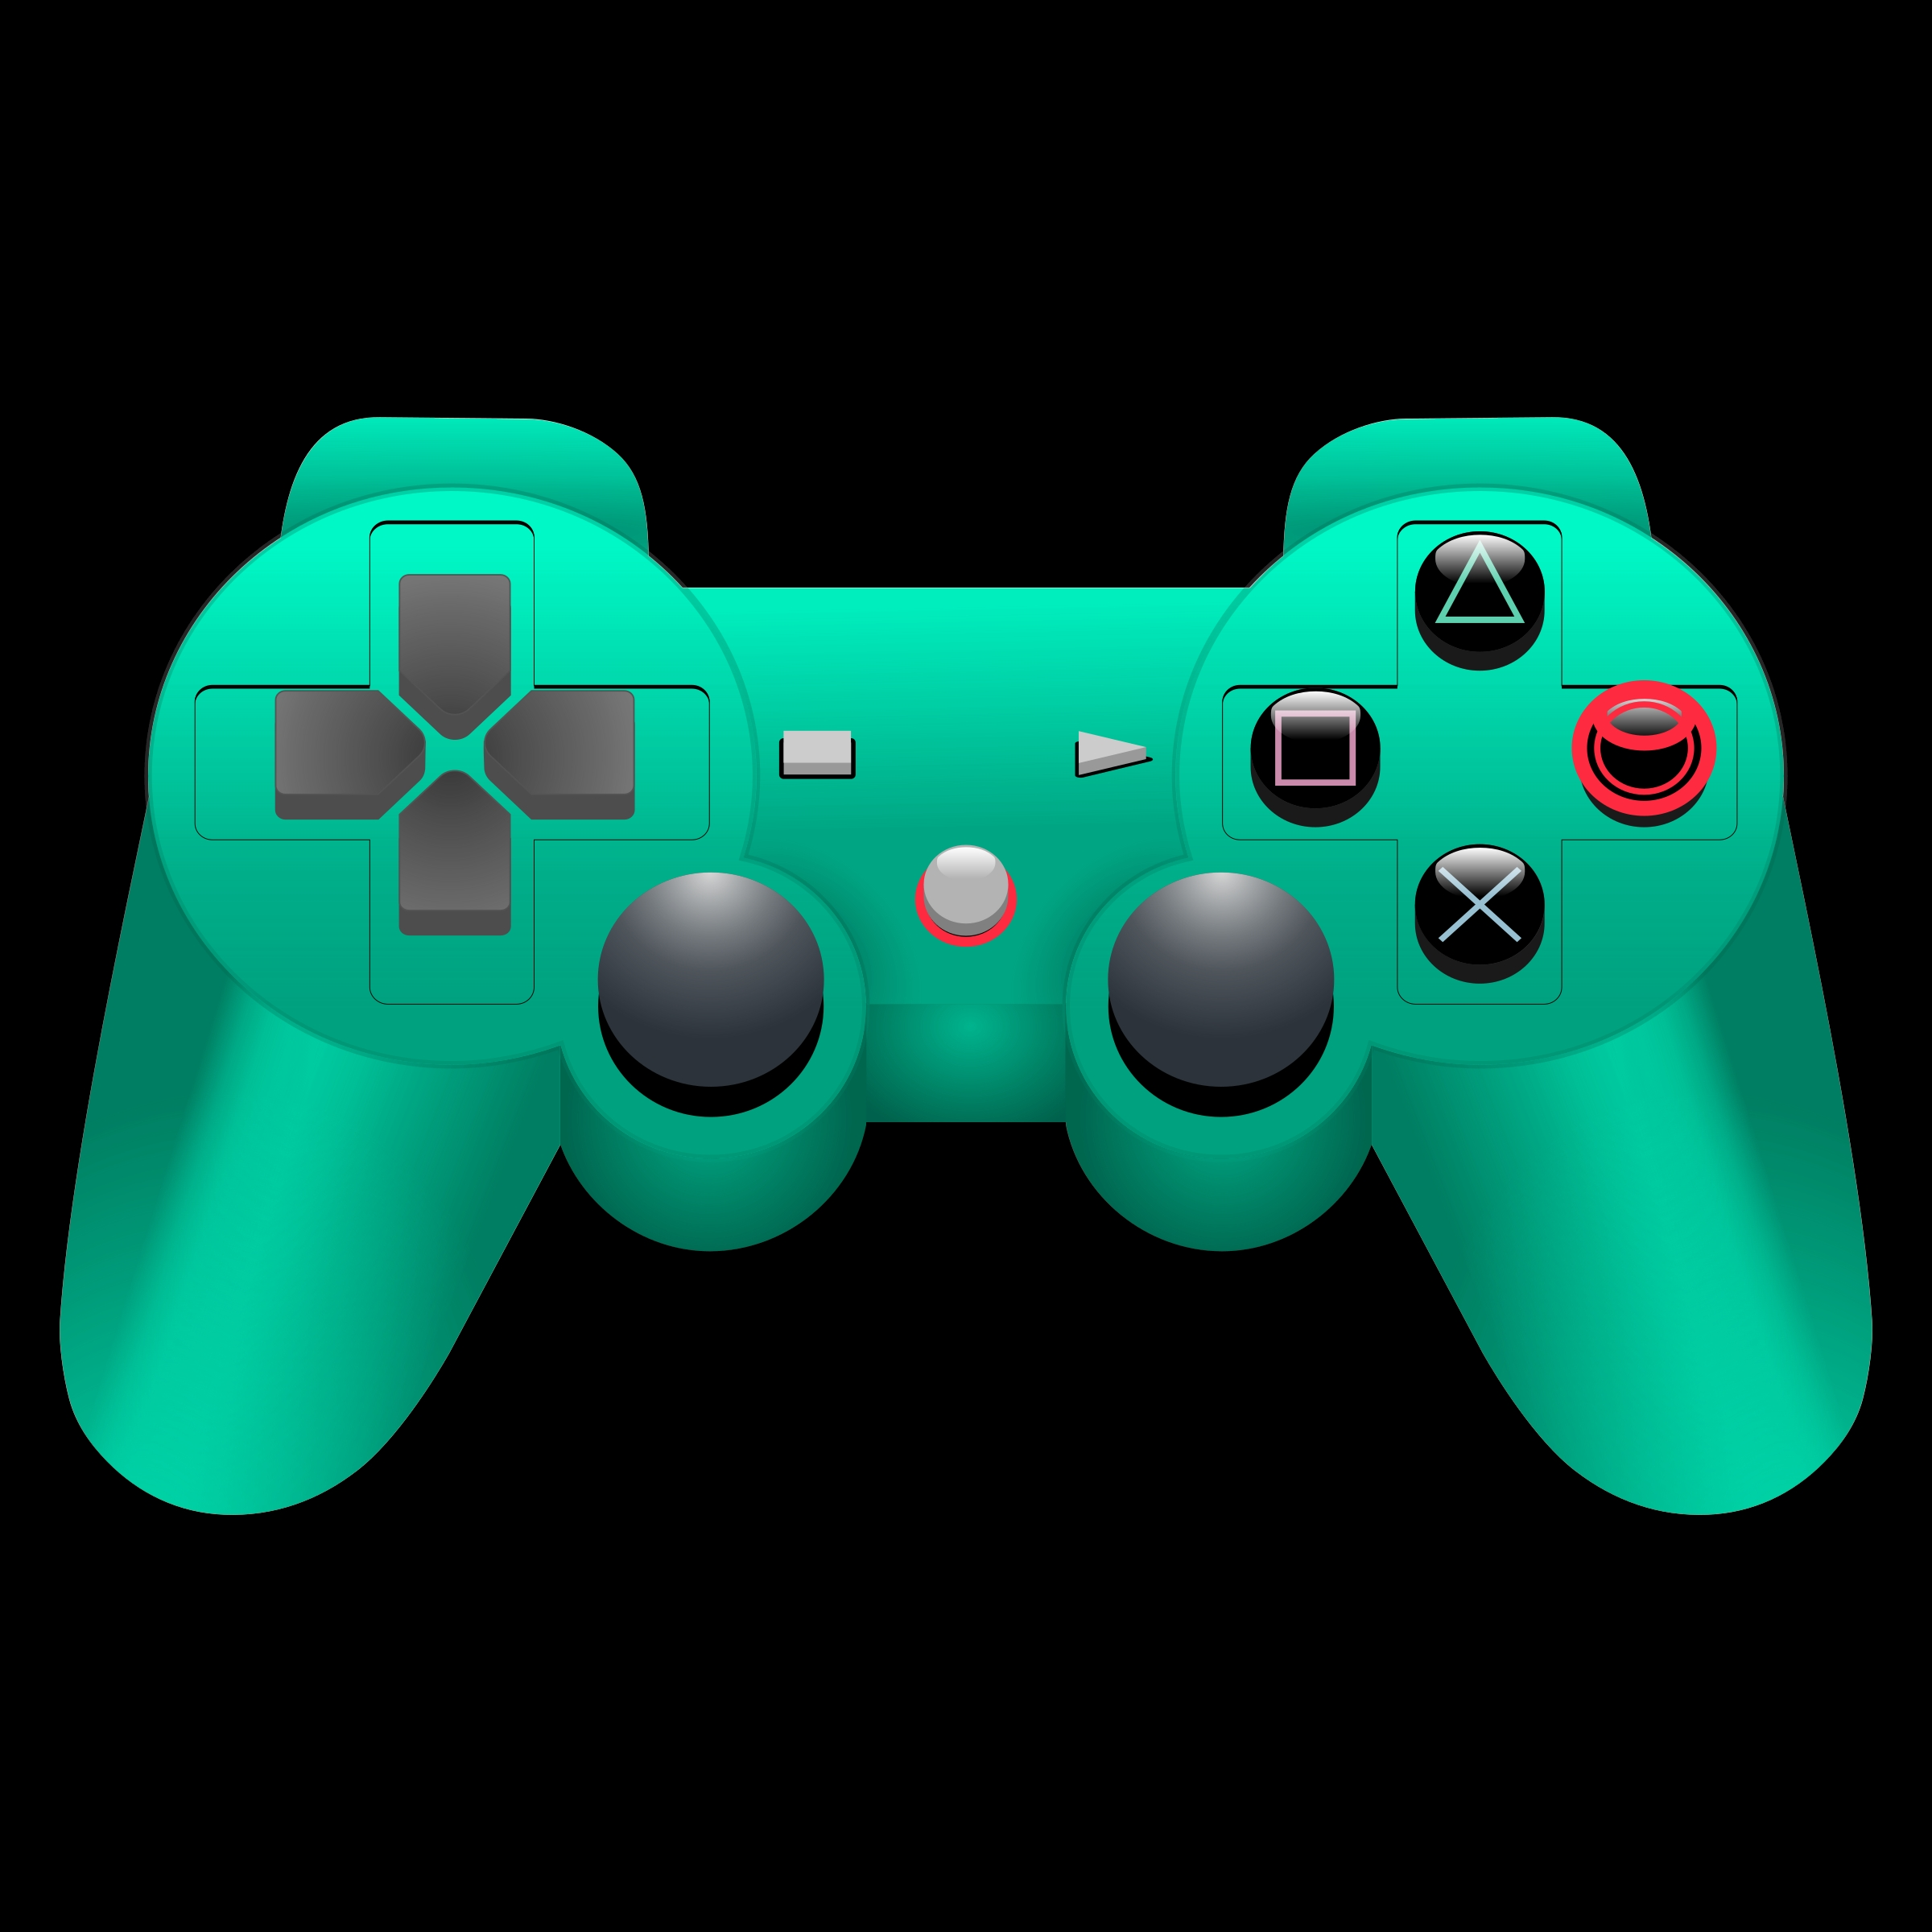 Game clipart video game controller. Best of collection digital